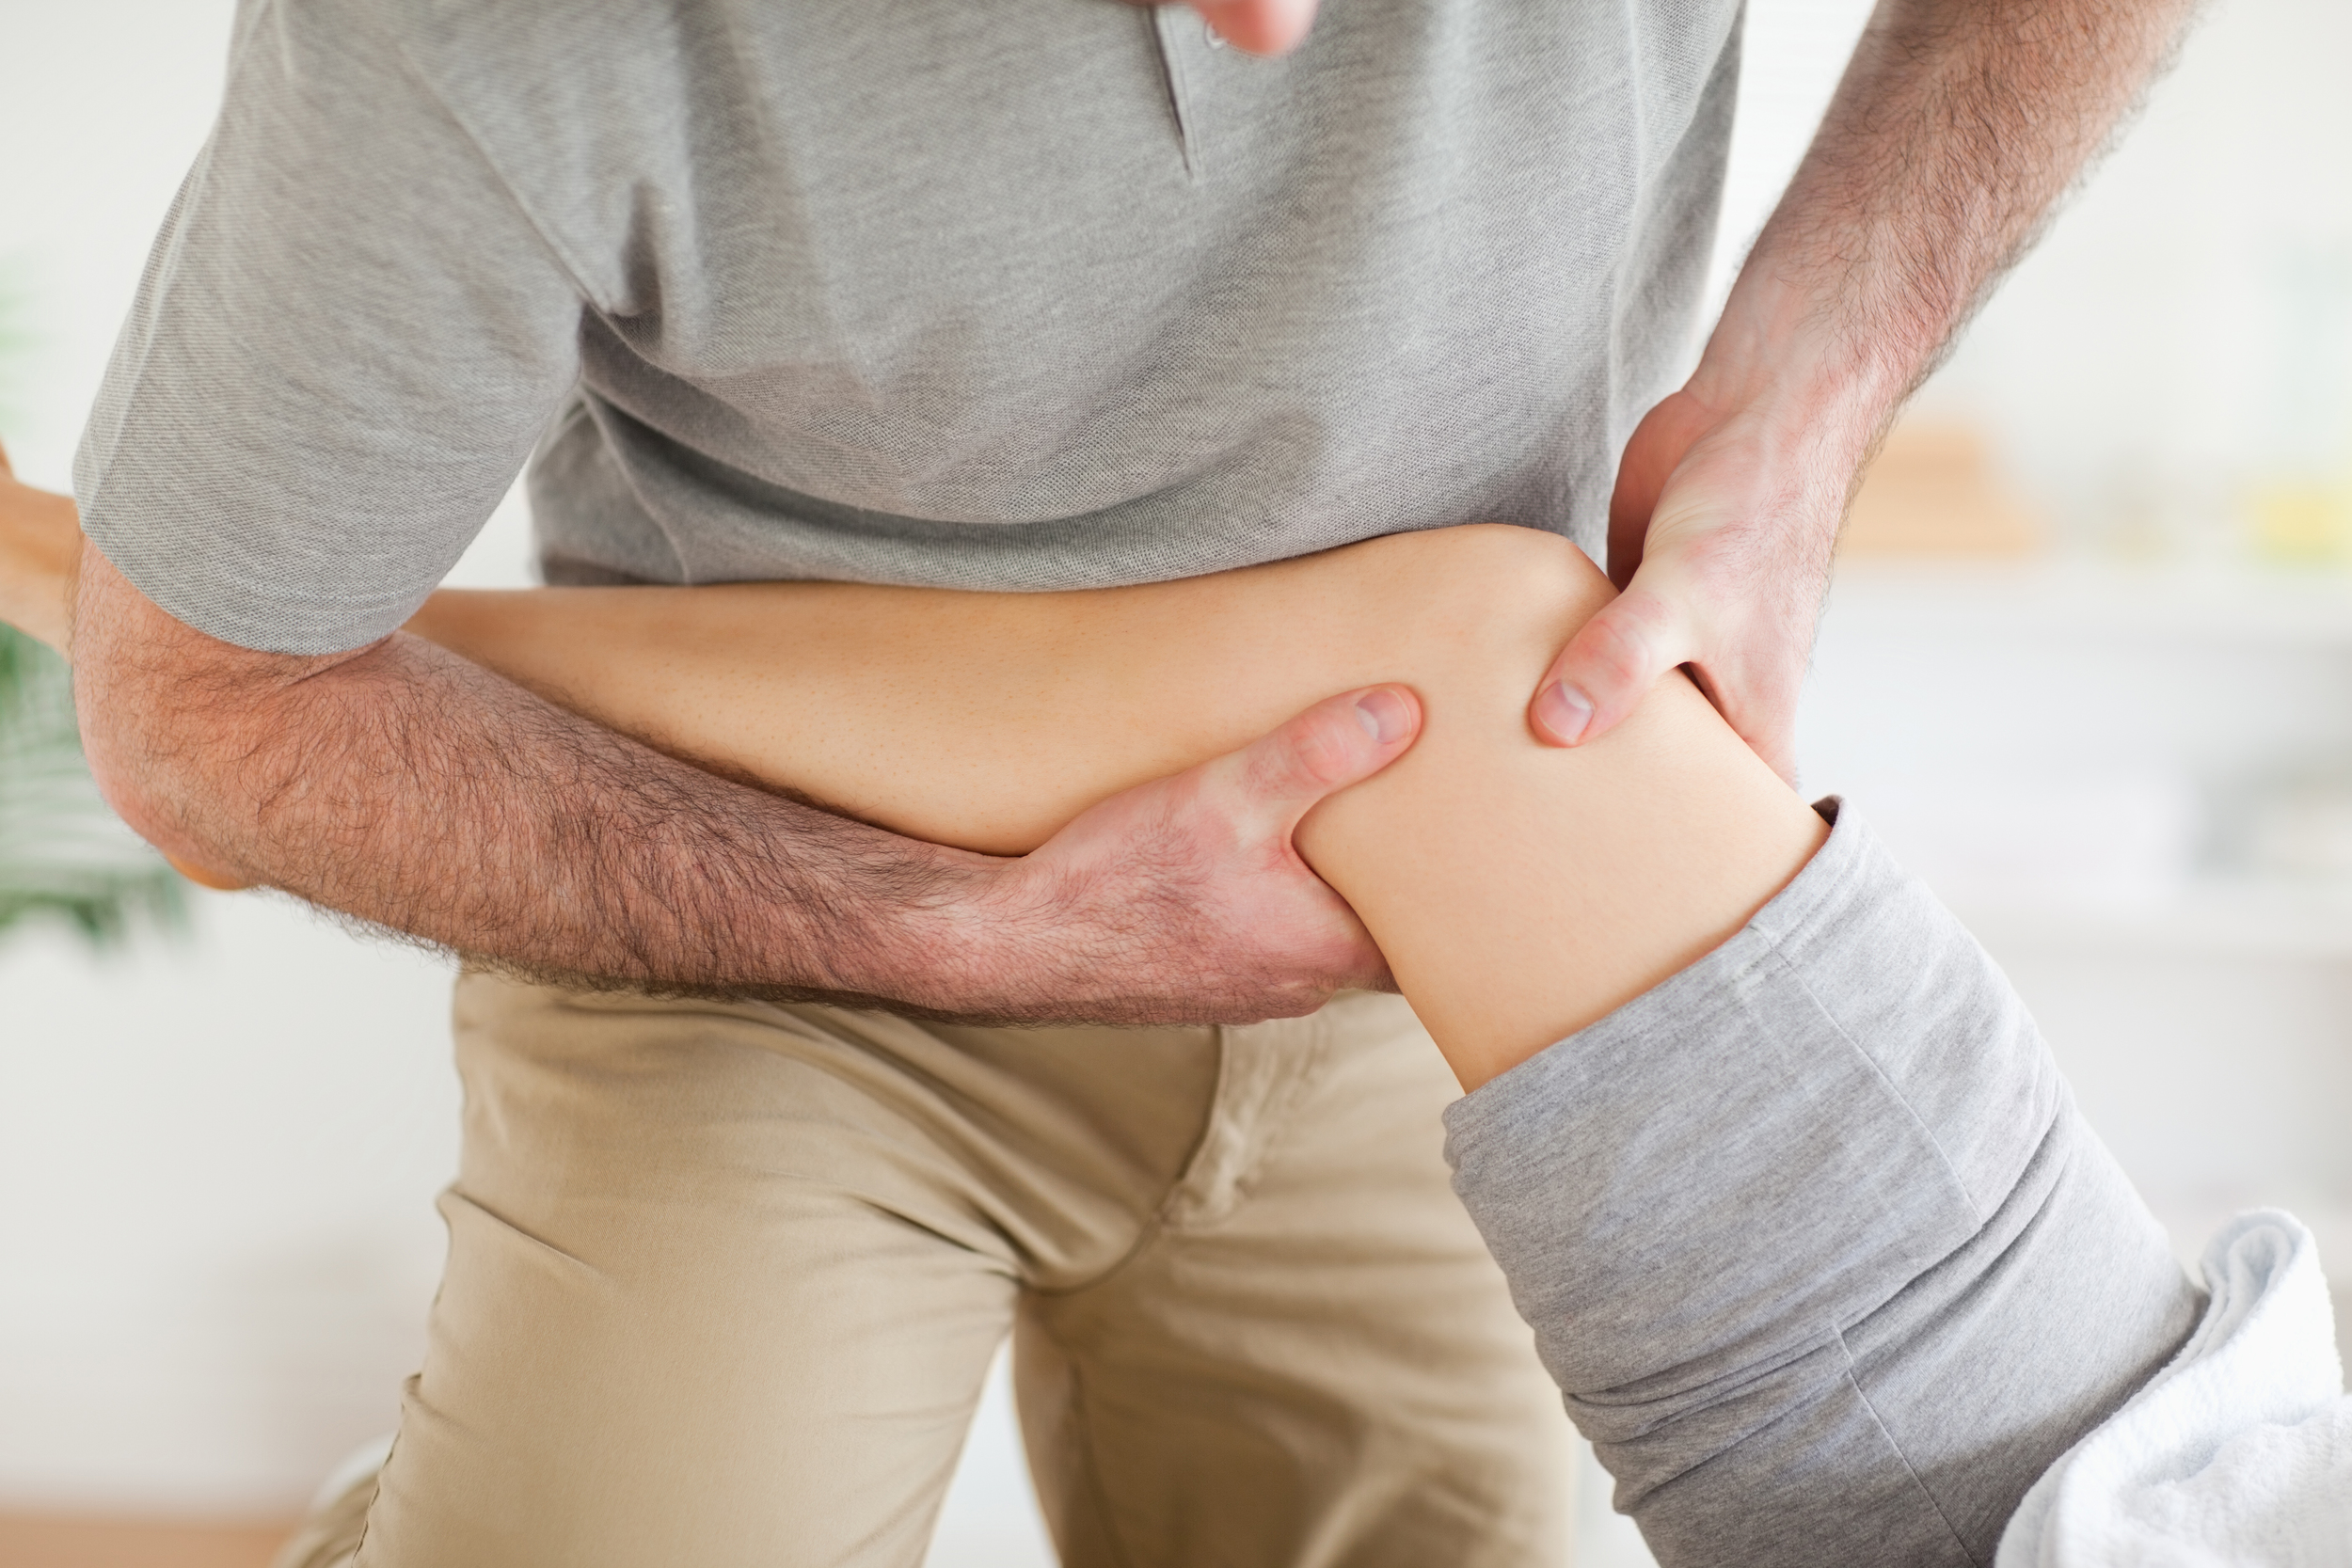 doctor helps patient with injury therapy